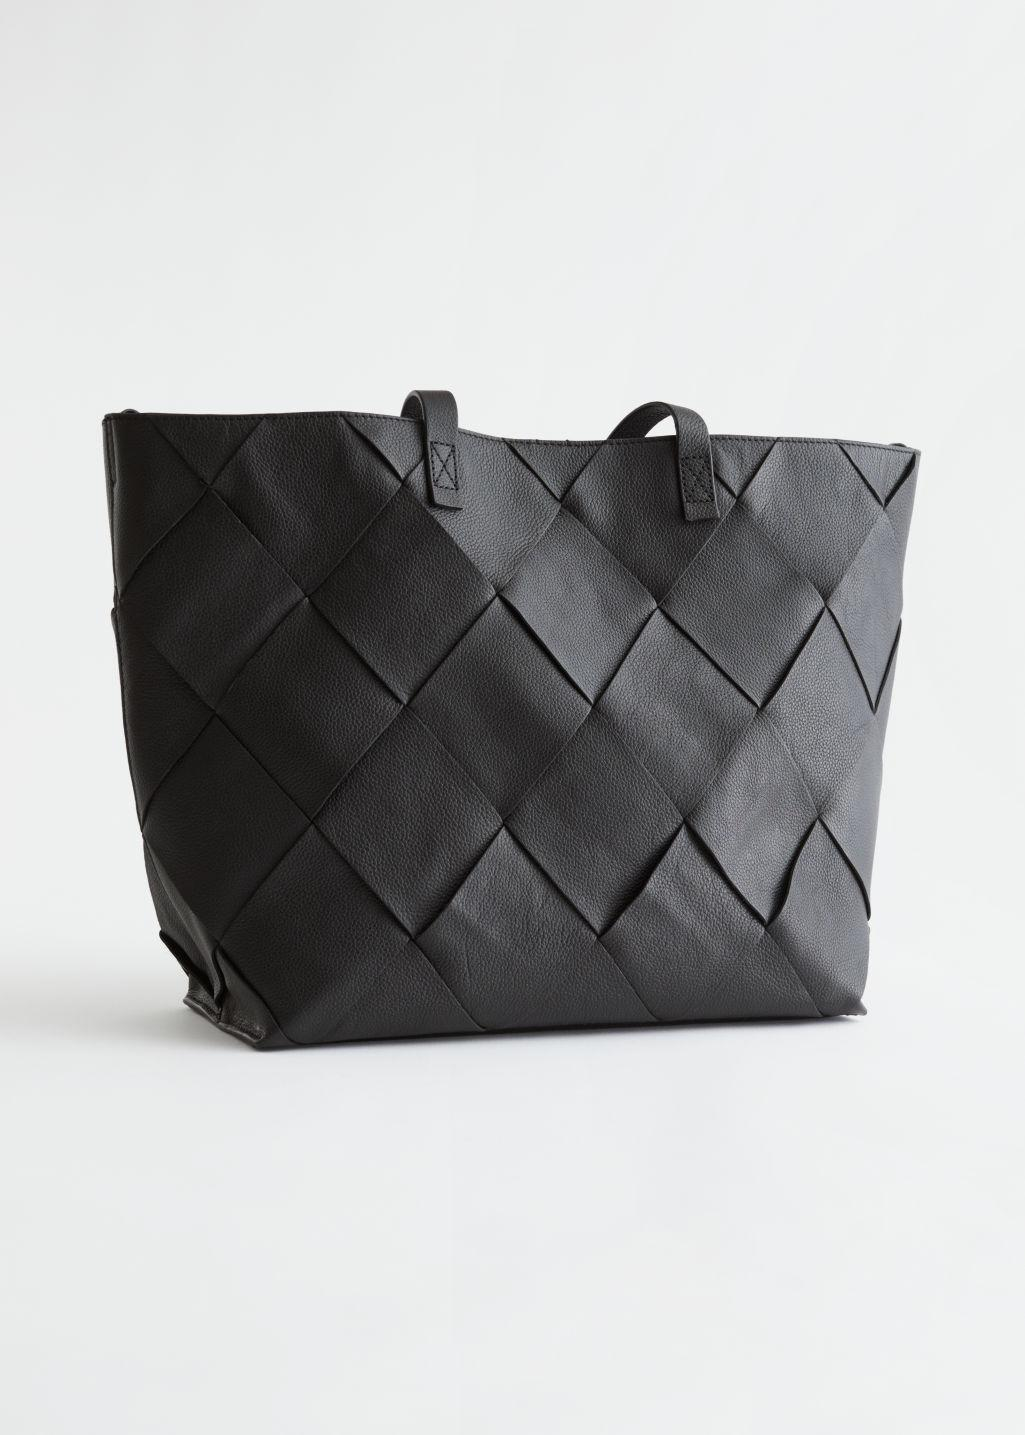 Braided Leather Tote Bag